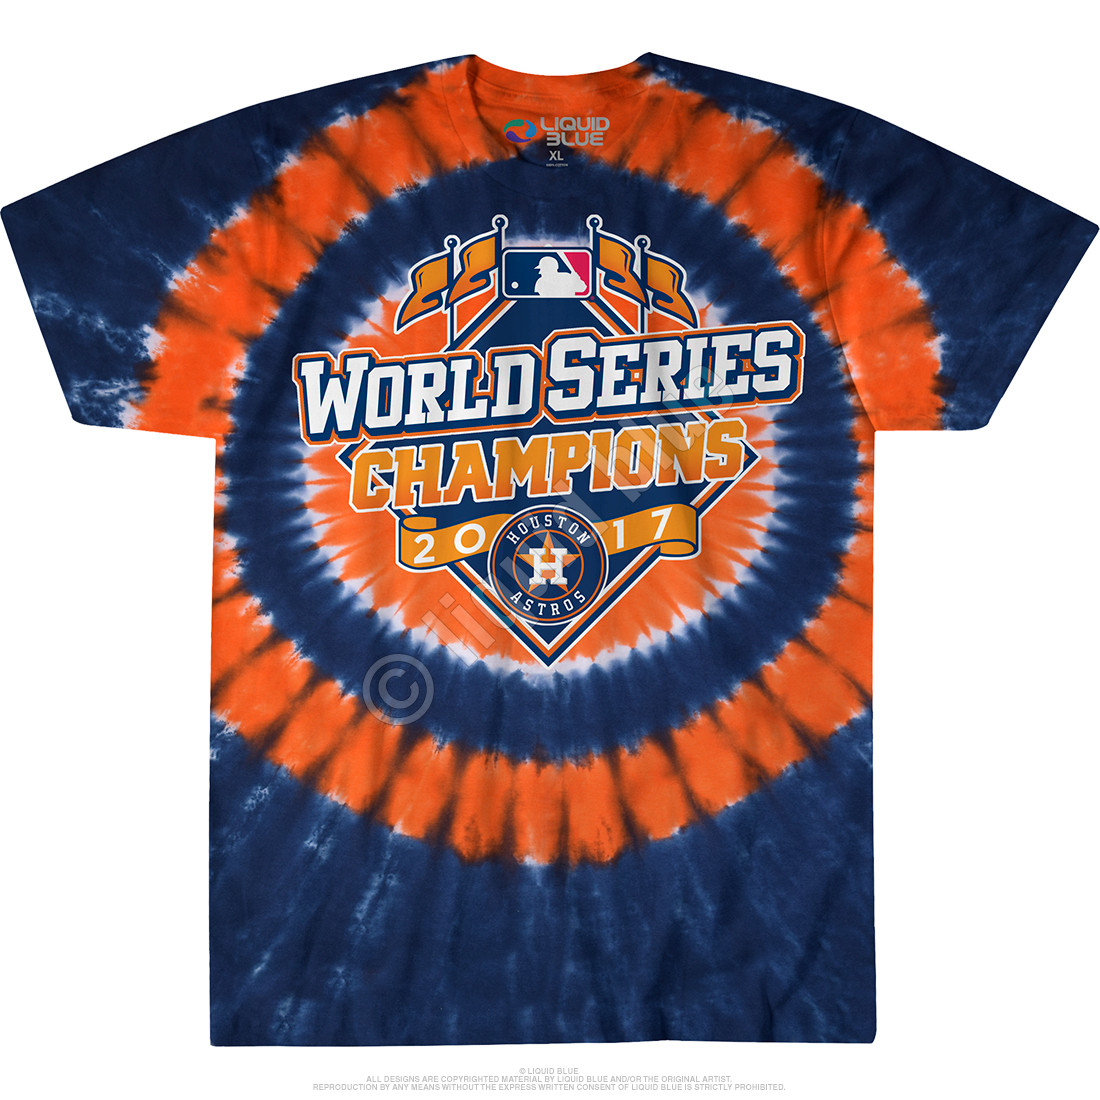 separation shoes 5e649 e97f9 Houston Astros World Series Champions Logo Tie-Dye T-Shirt Clearance 50% OFF